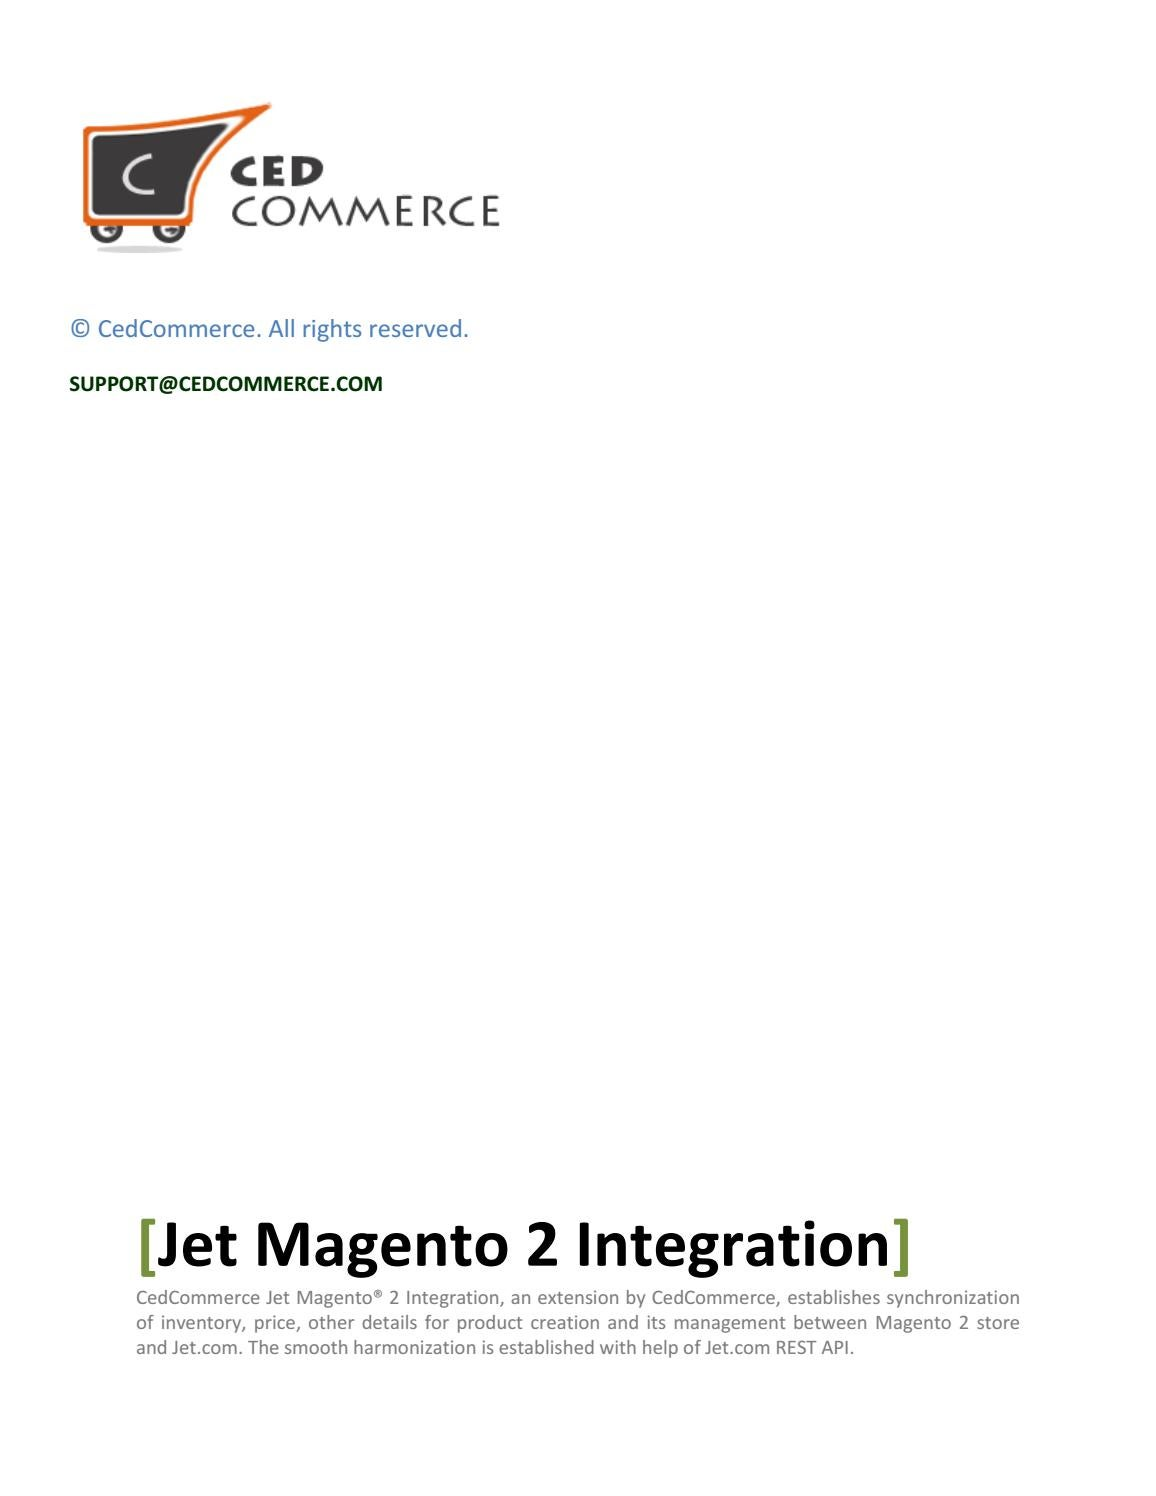 Jet Magento 2 Integration User Manual By CedCommerce by